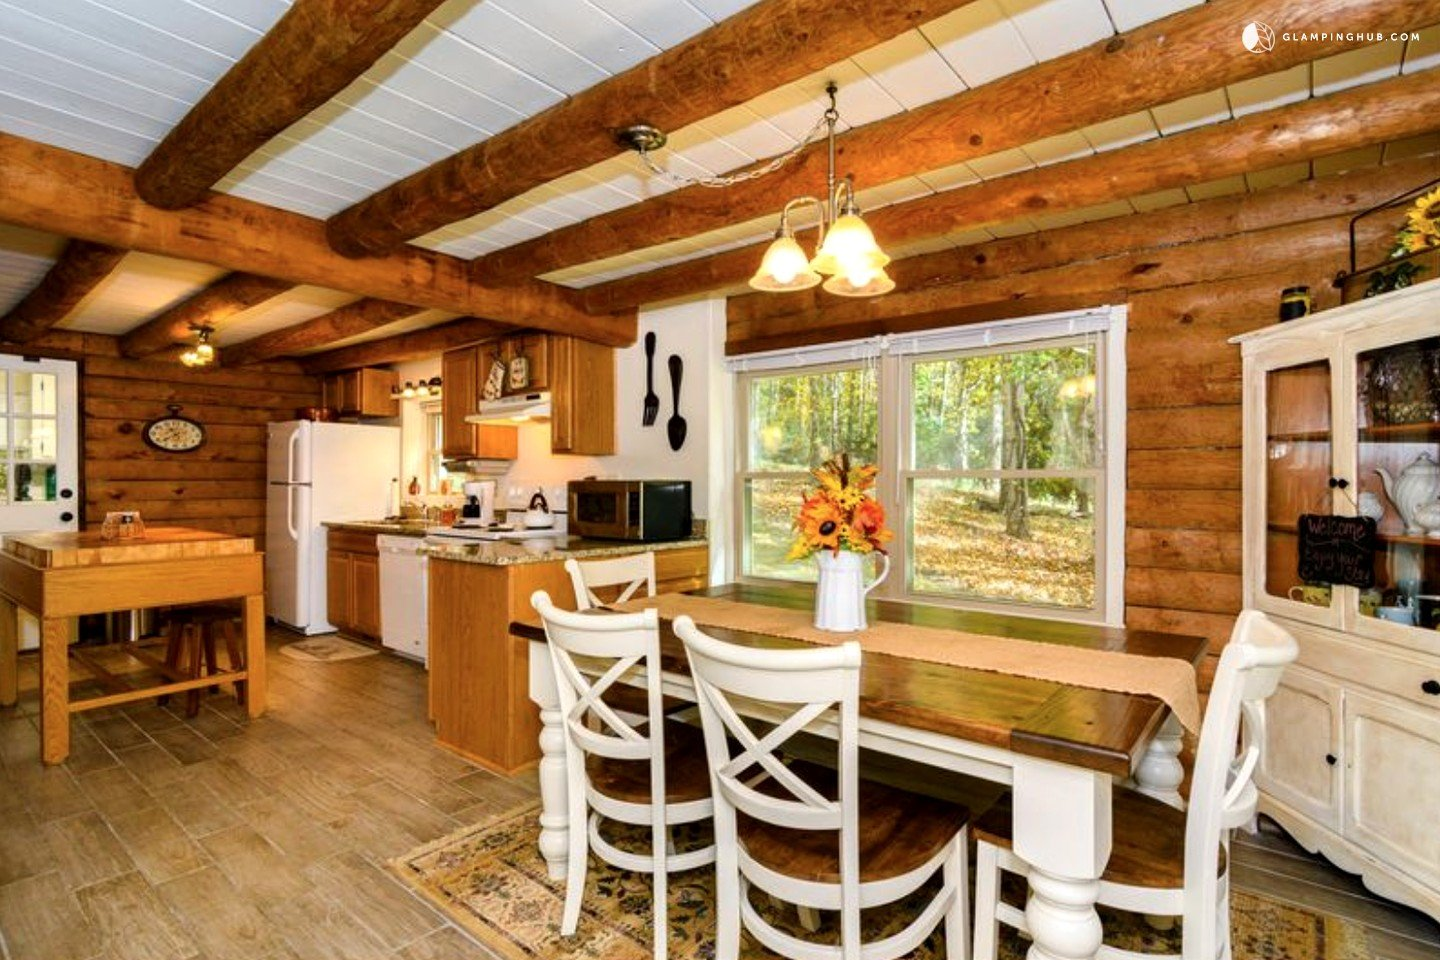 Cabin rental with hot tub near asheville north carolina for Cabins near hendersonville nc